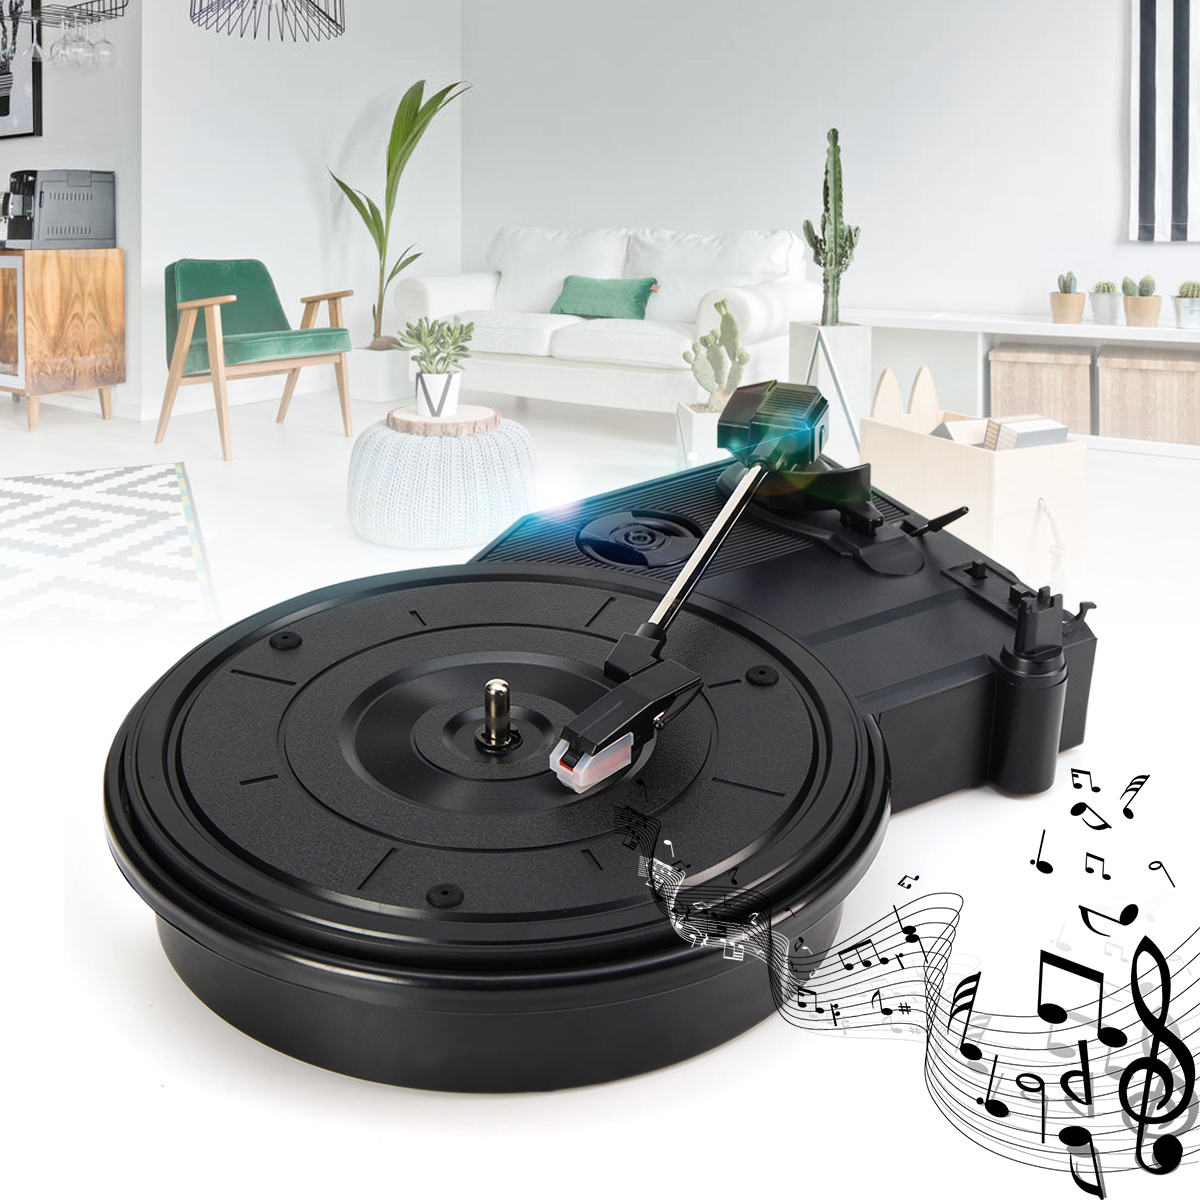 Huaxie HX115 Vintage USB Vinyl Record Player Turntable Stereo Vinyl Record to PC Converter 220V black tape recorder все цены